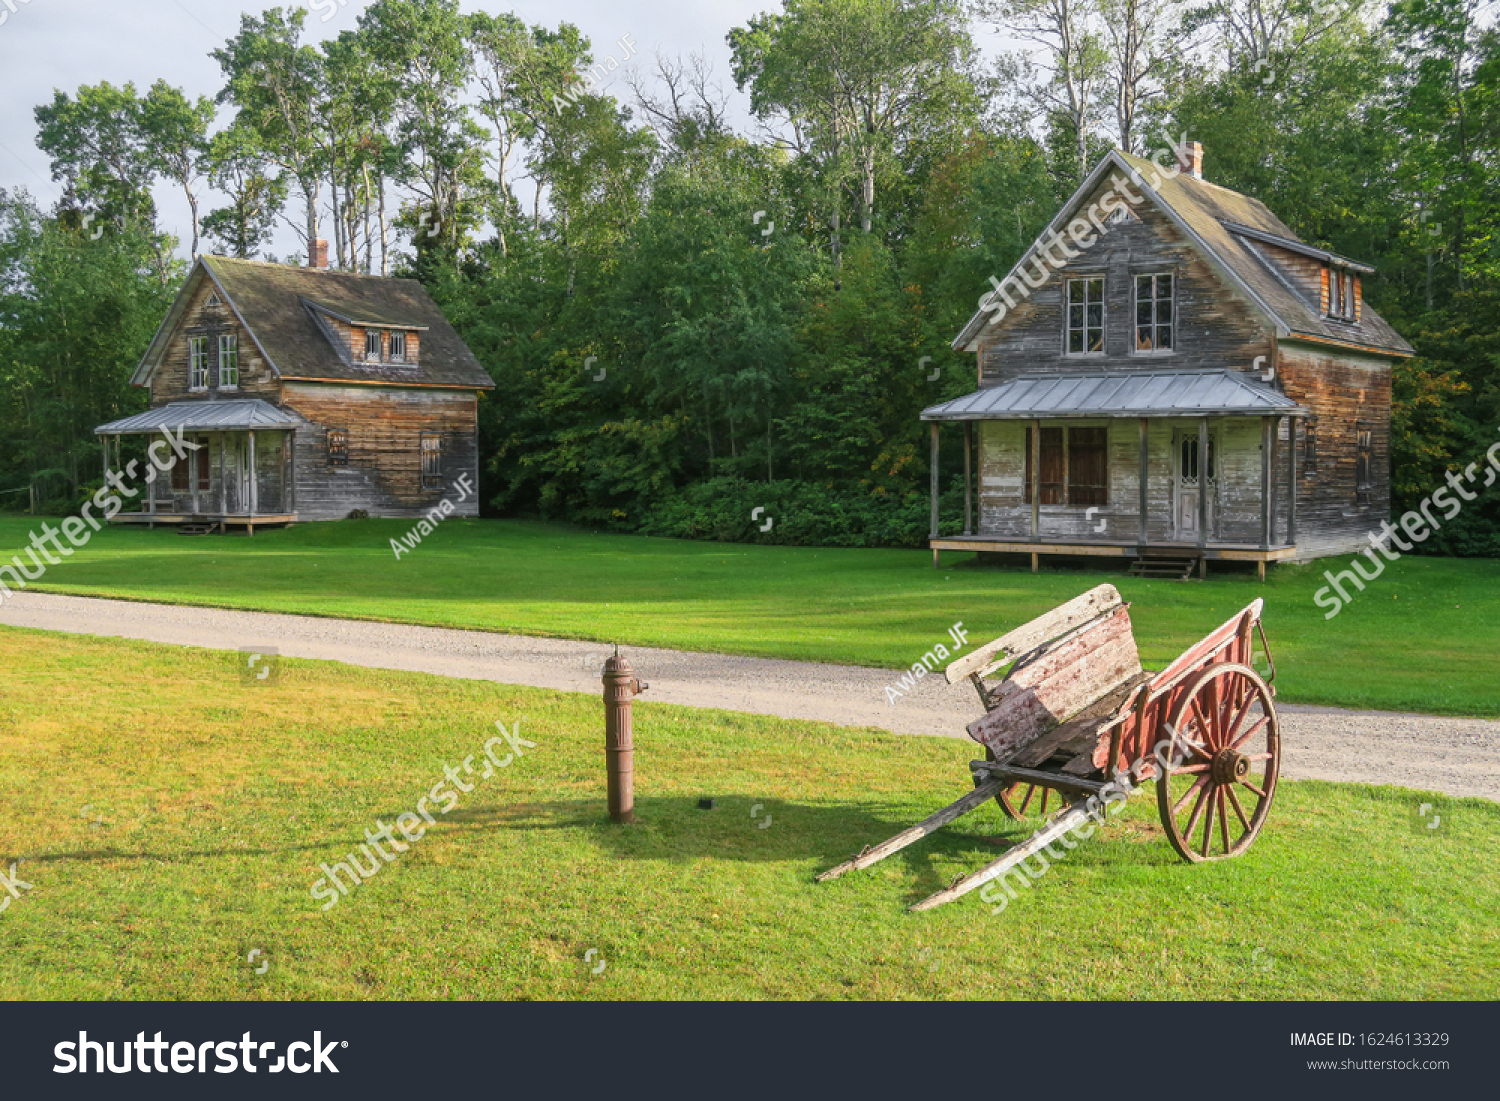 stock-photo-wooden-houses-and-old-wooden